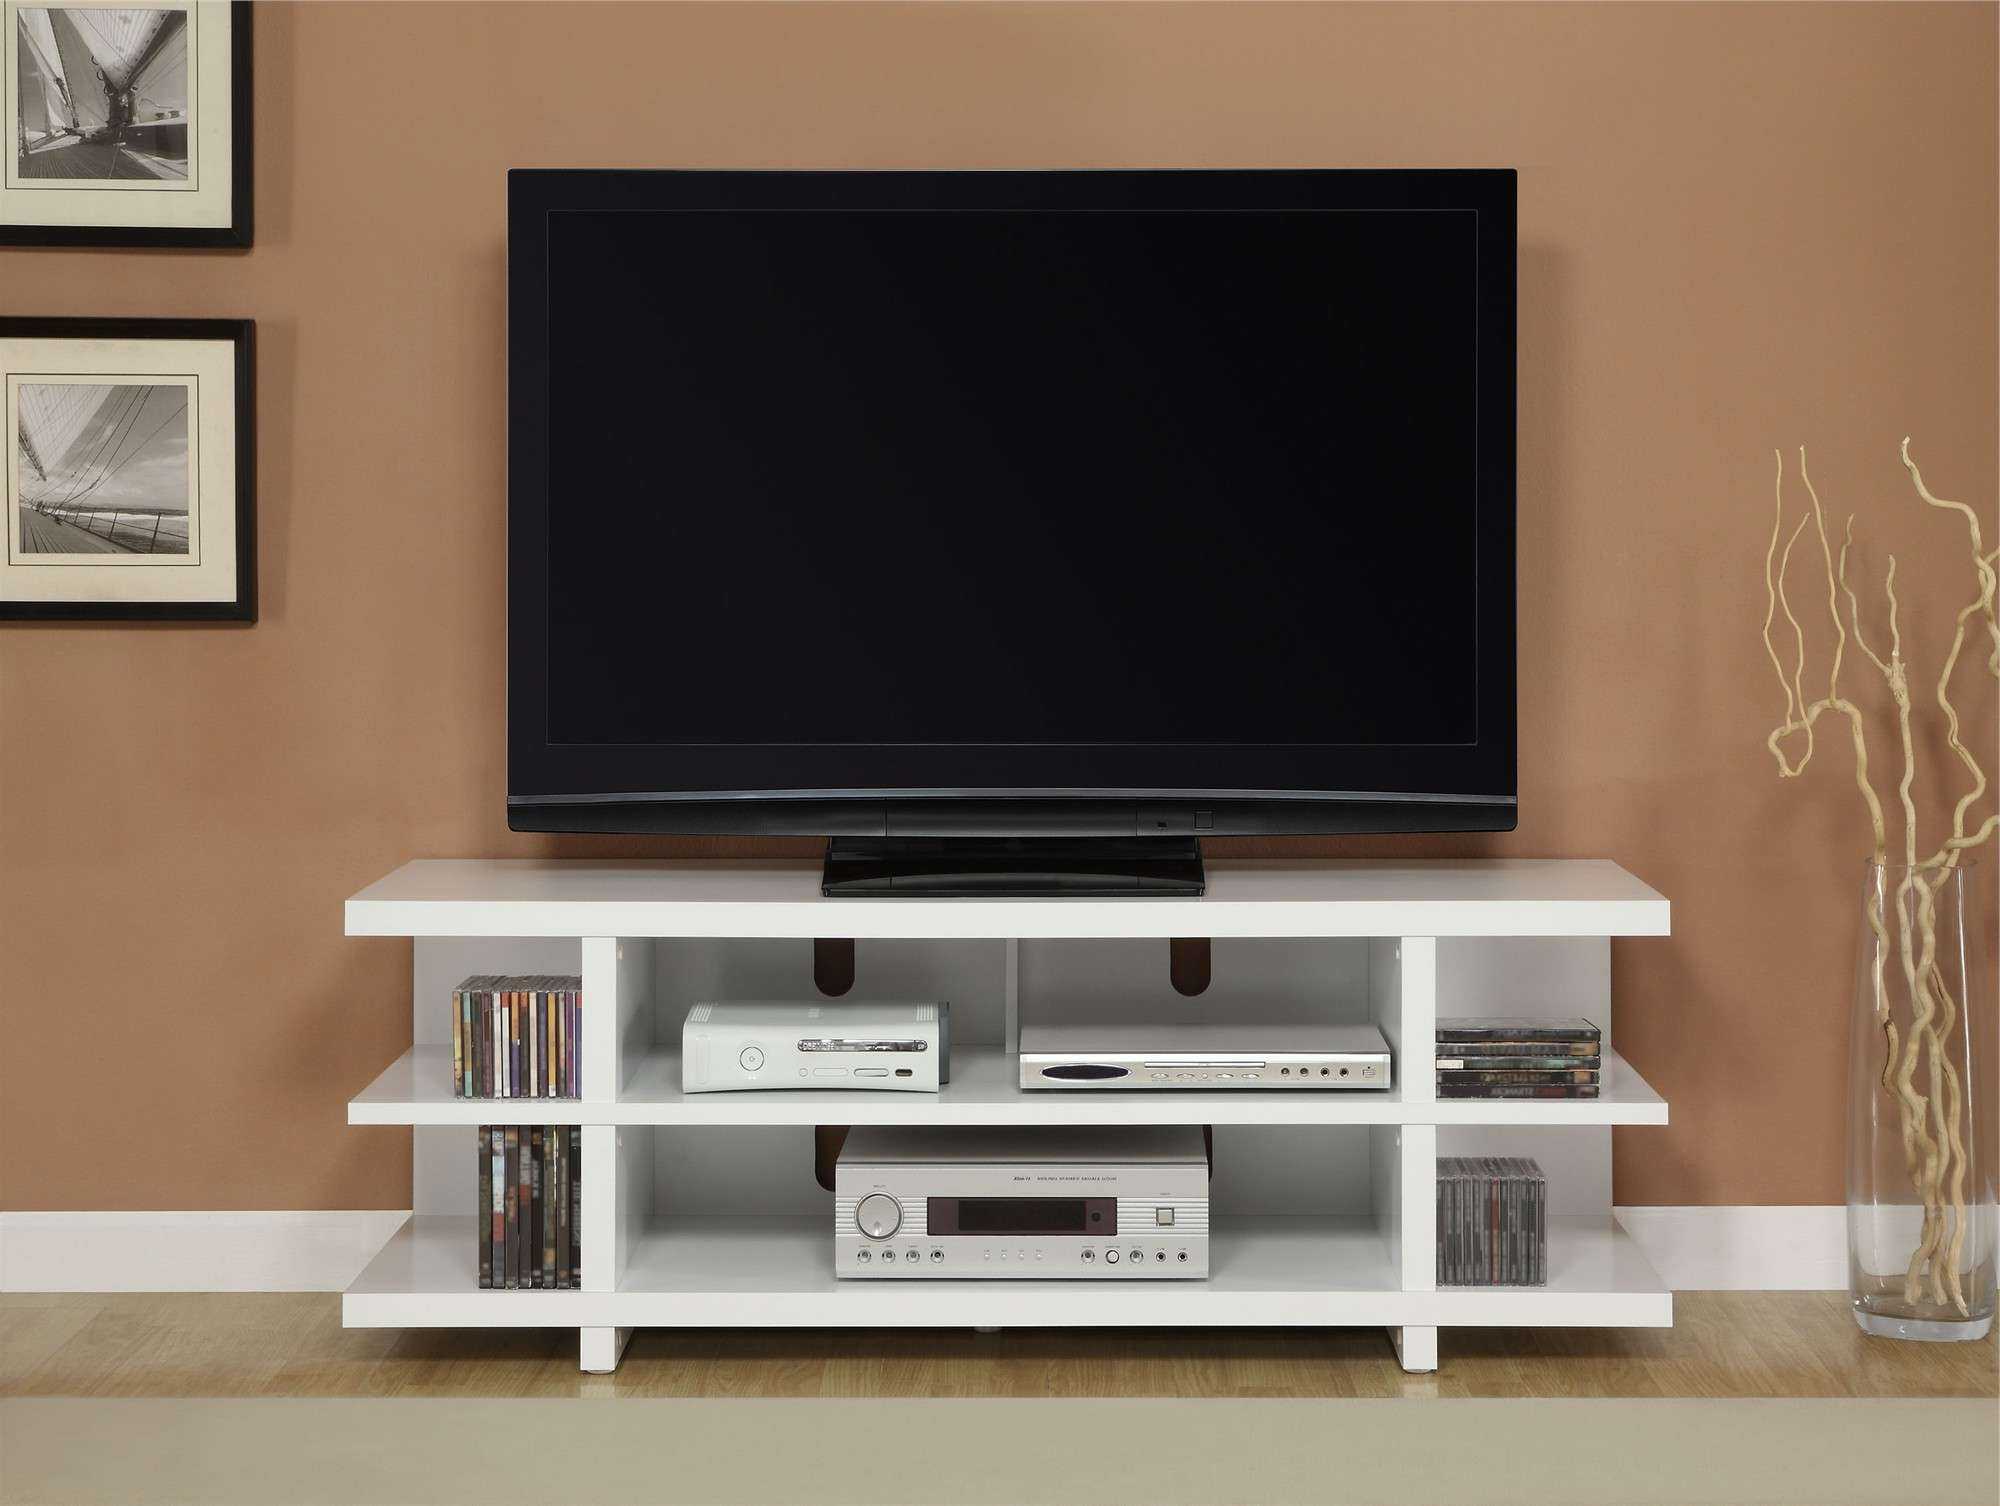 White Stained Wooden Tv Stand Having Several Open Shelves For Throughout Modern Tv Stands For Flat Screens (View 15 of 15)